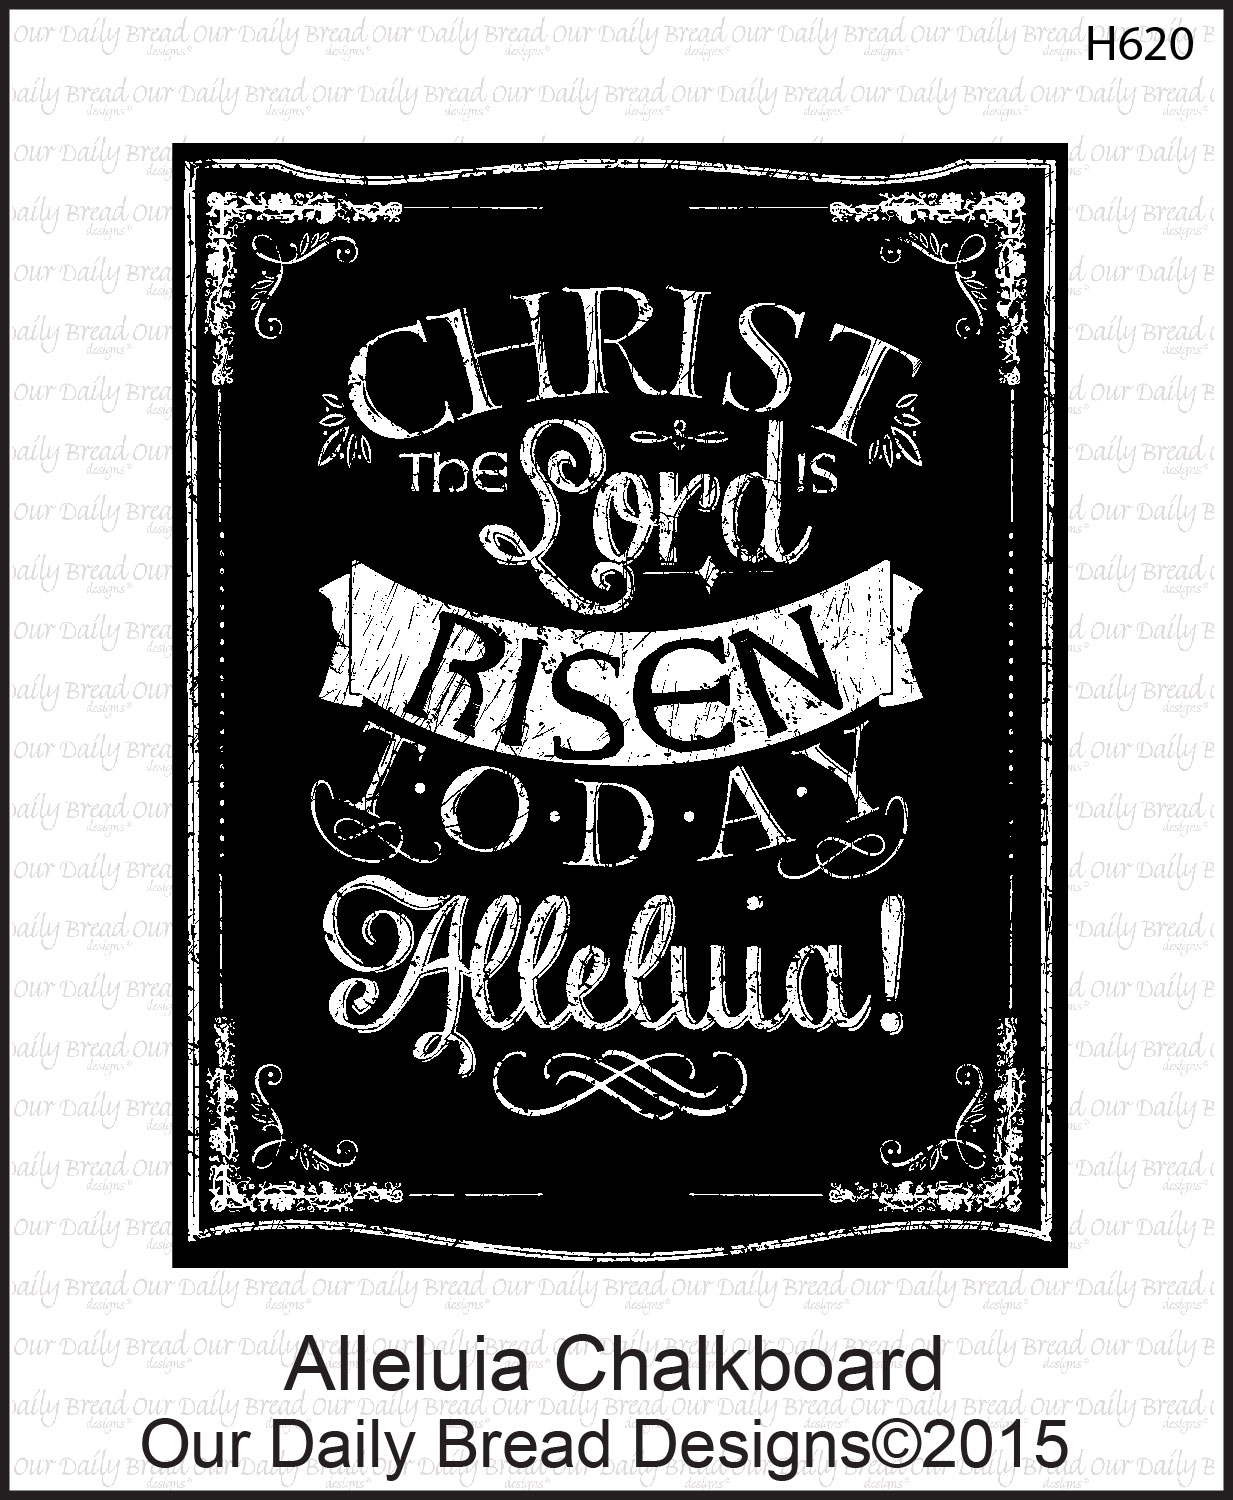 Stamps - Our Daily Bread Designs Alleluia Chalkboard